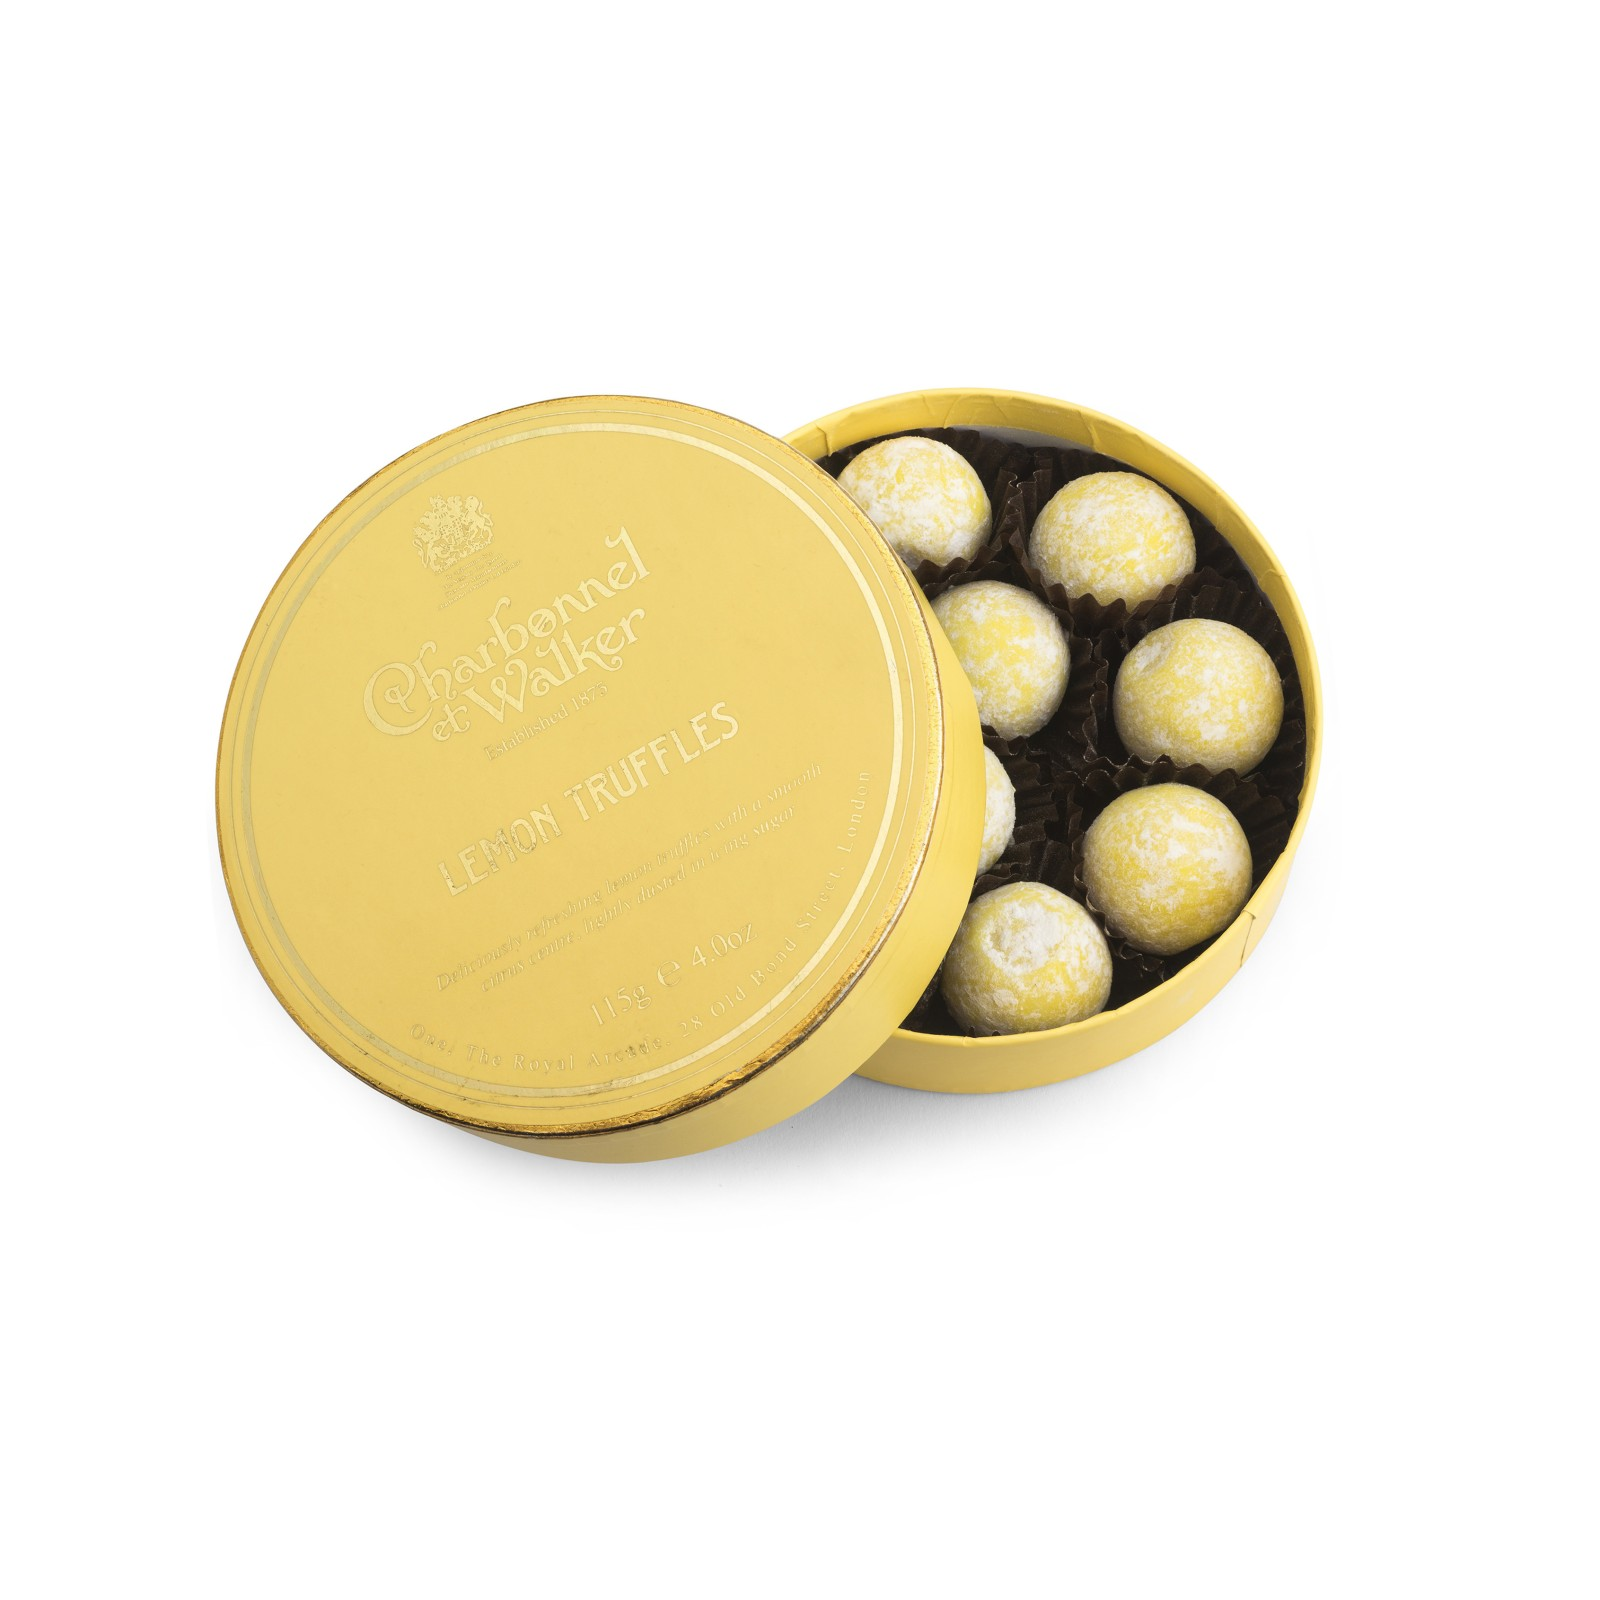 Charbonnel et Walker - Lemon truffles -